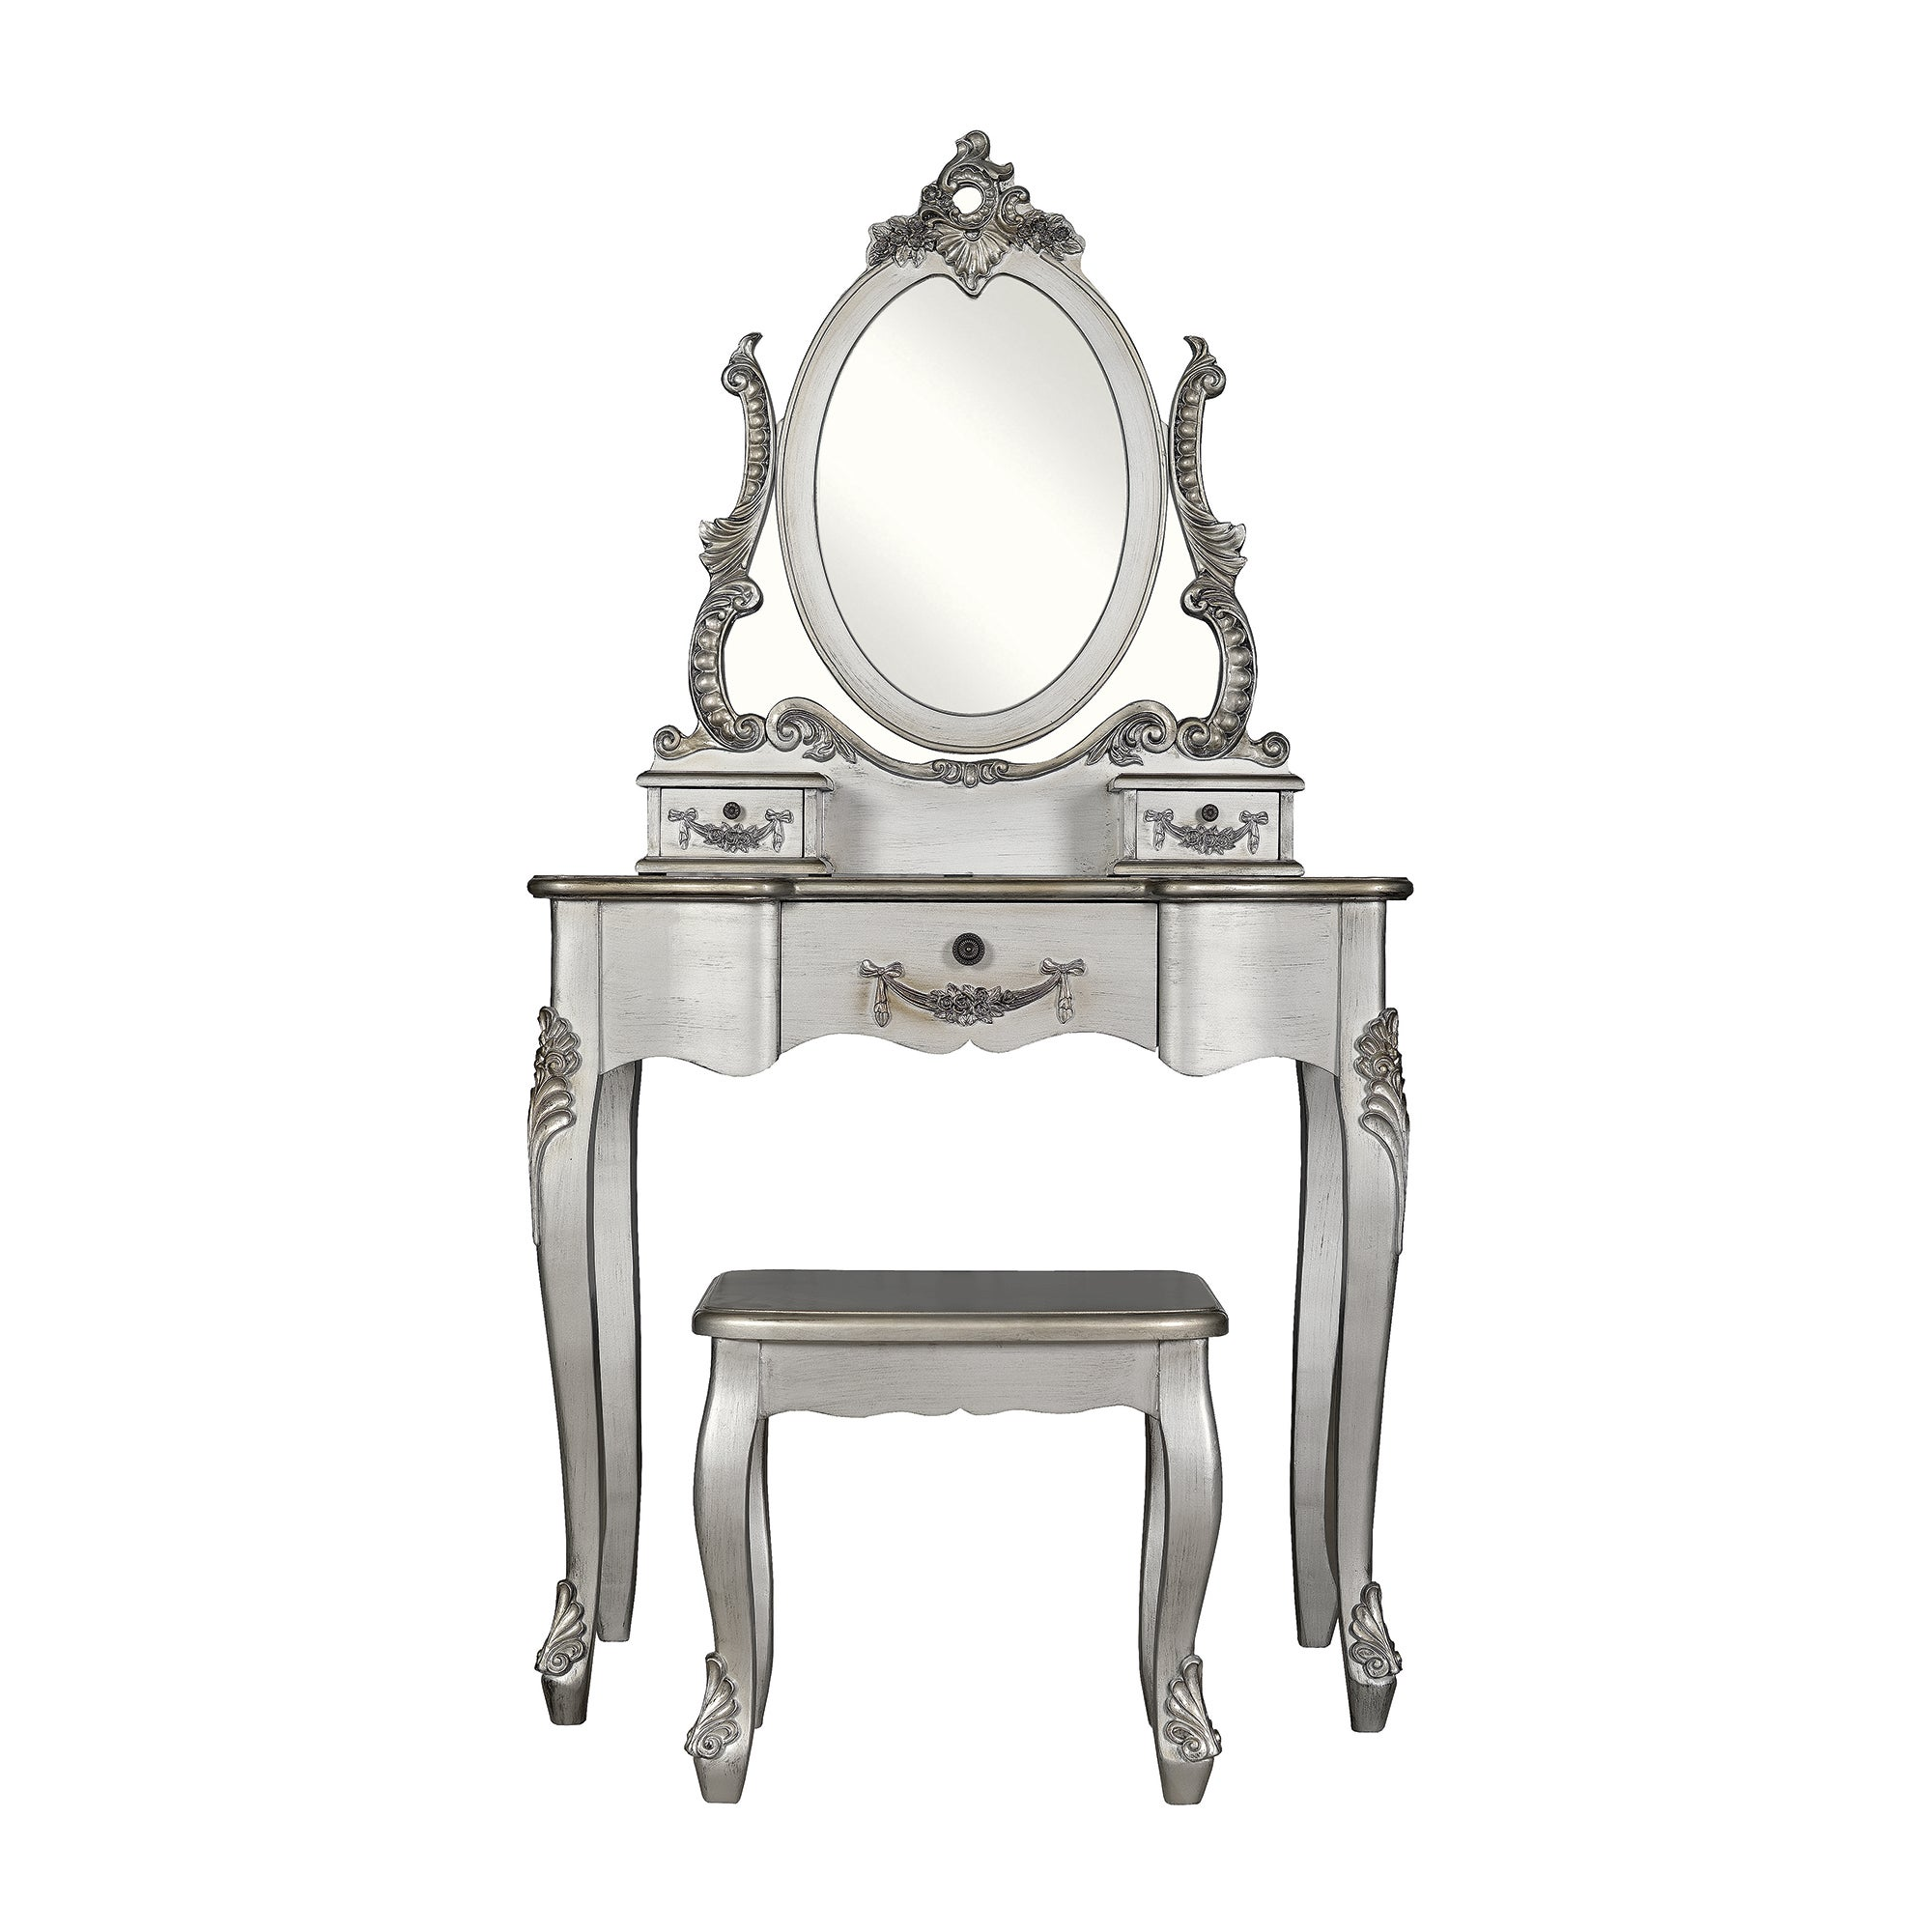 Photo of Toulouse silver dressing table set silver